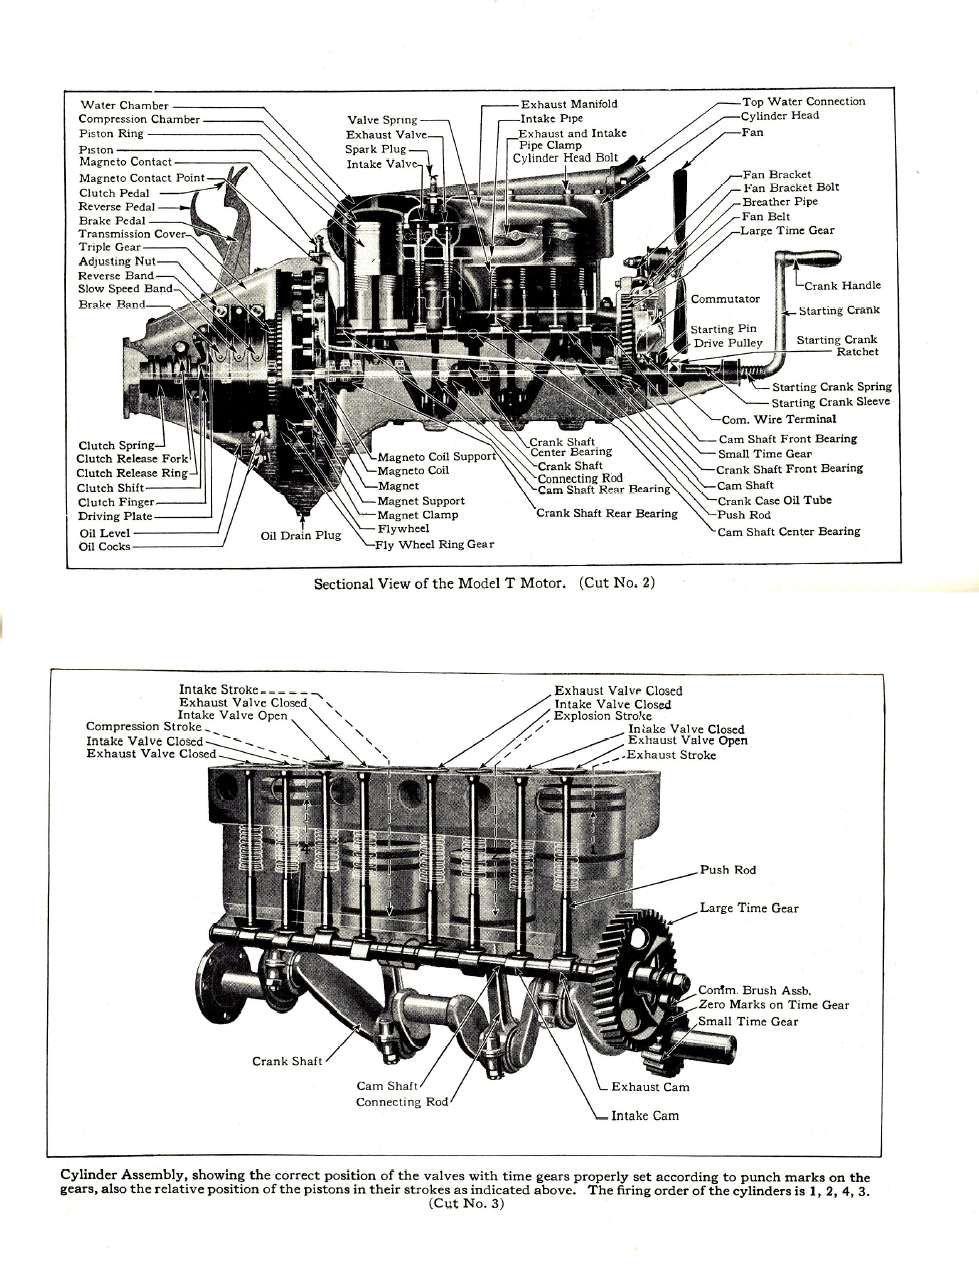 model t ford forum  engine schematics for school project